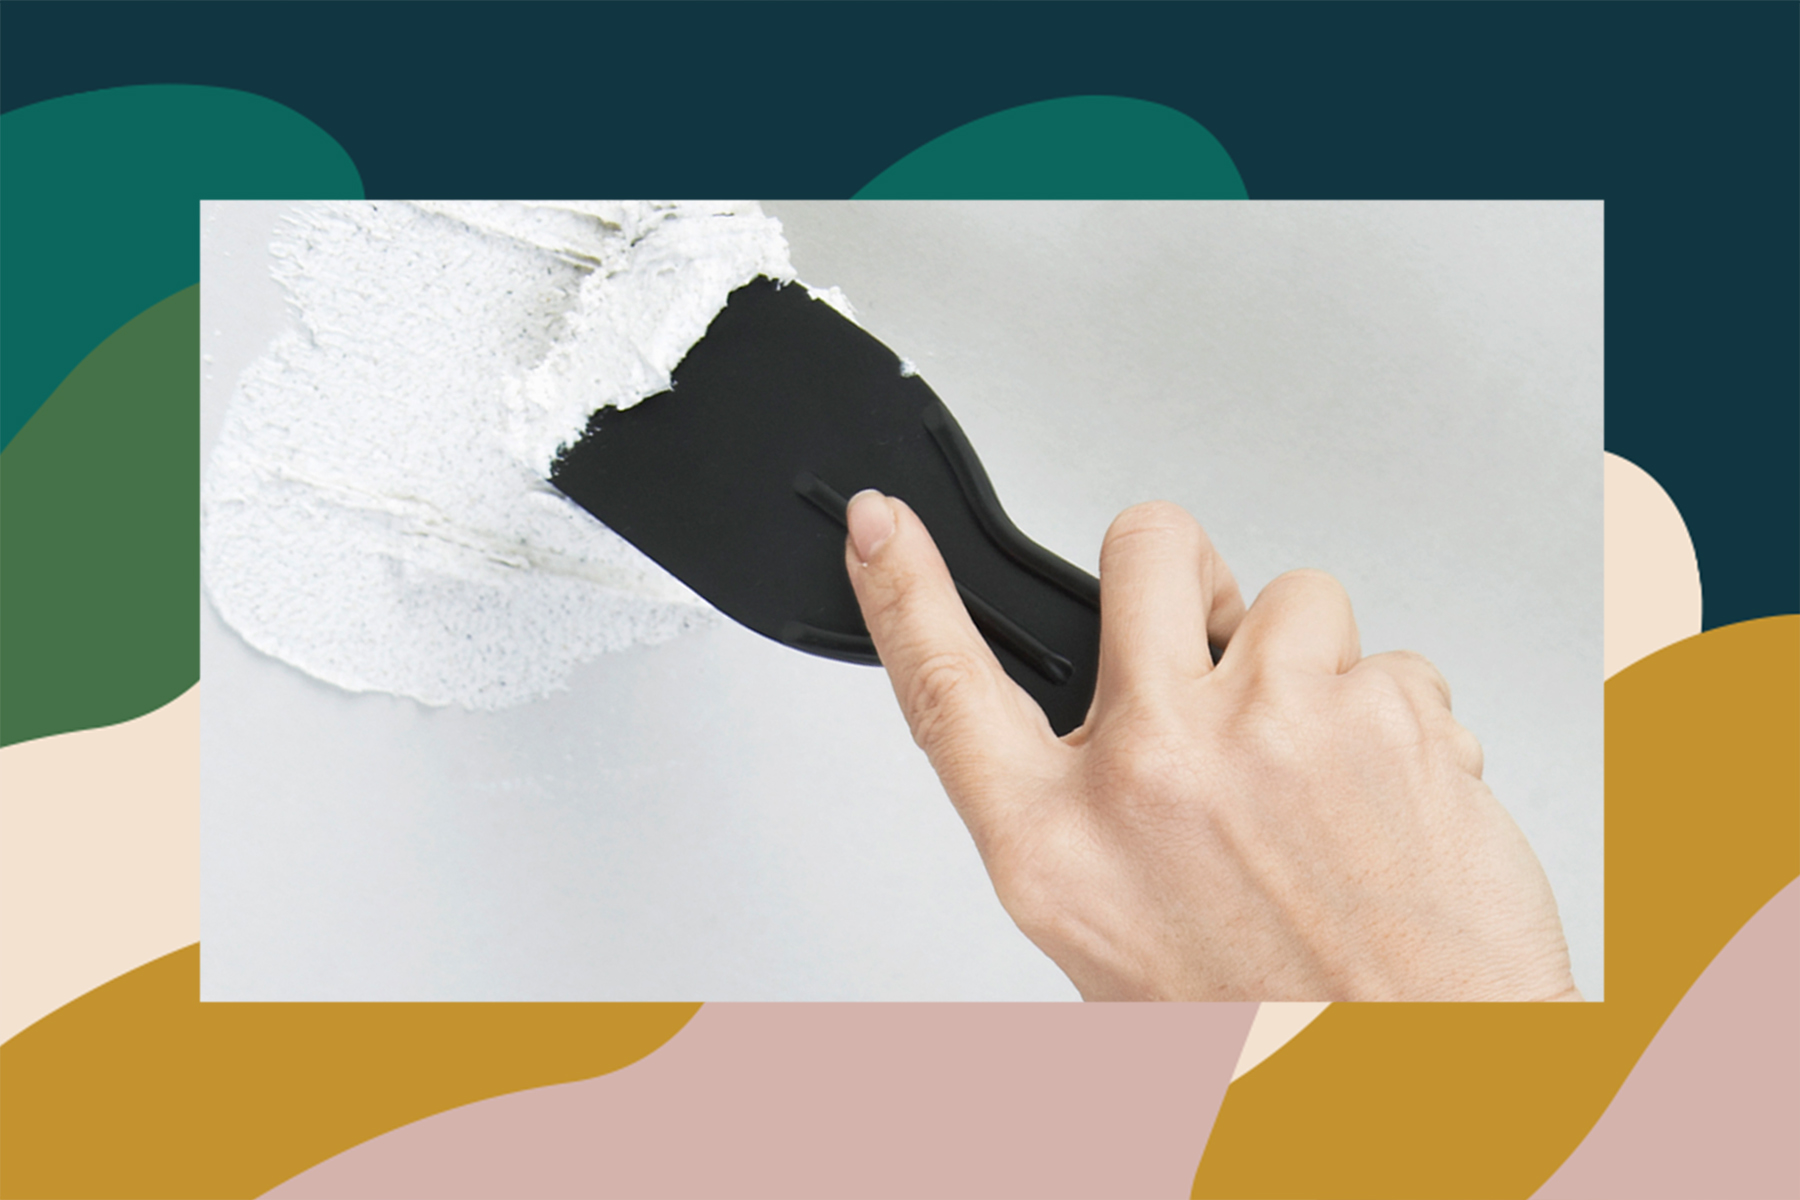 how to spackle a hole